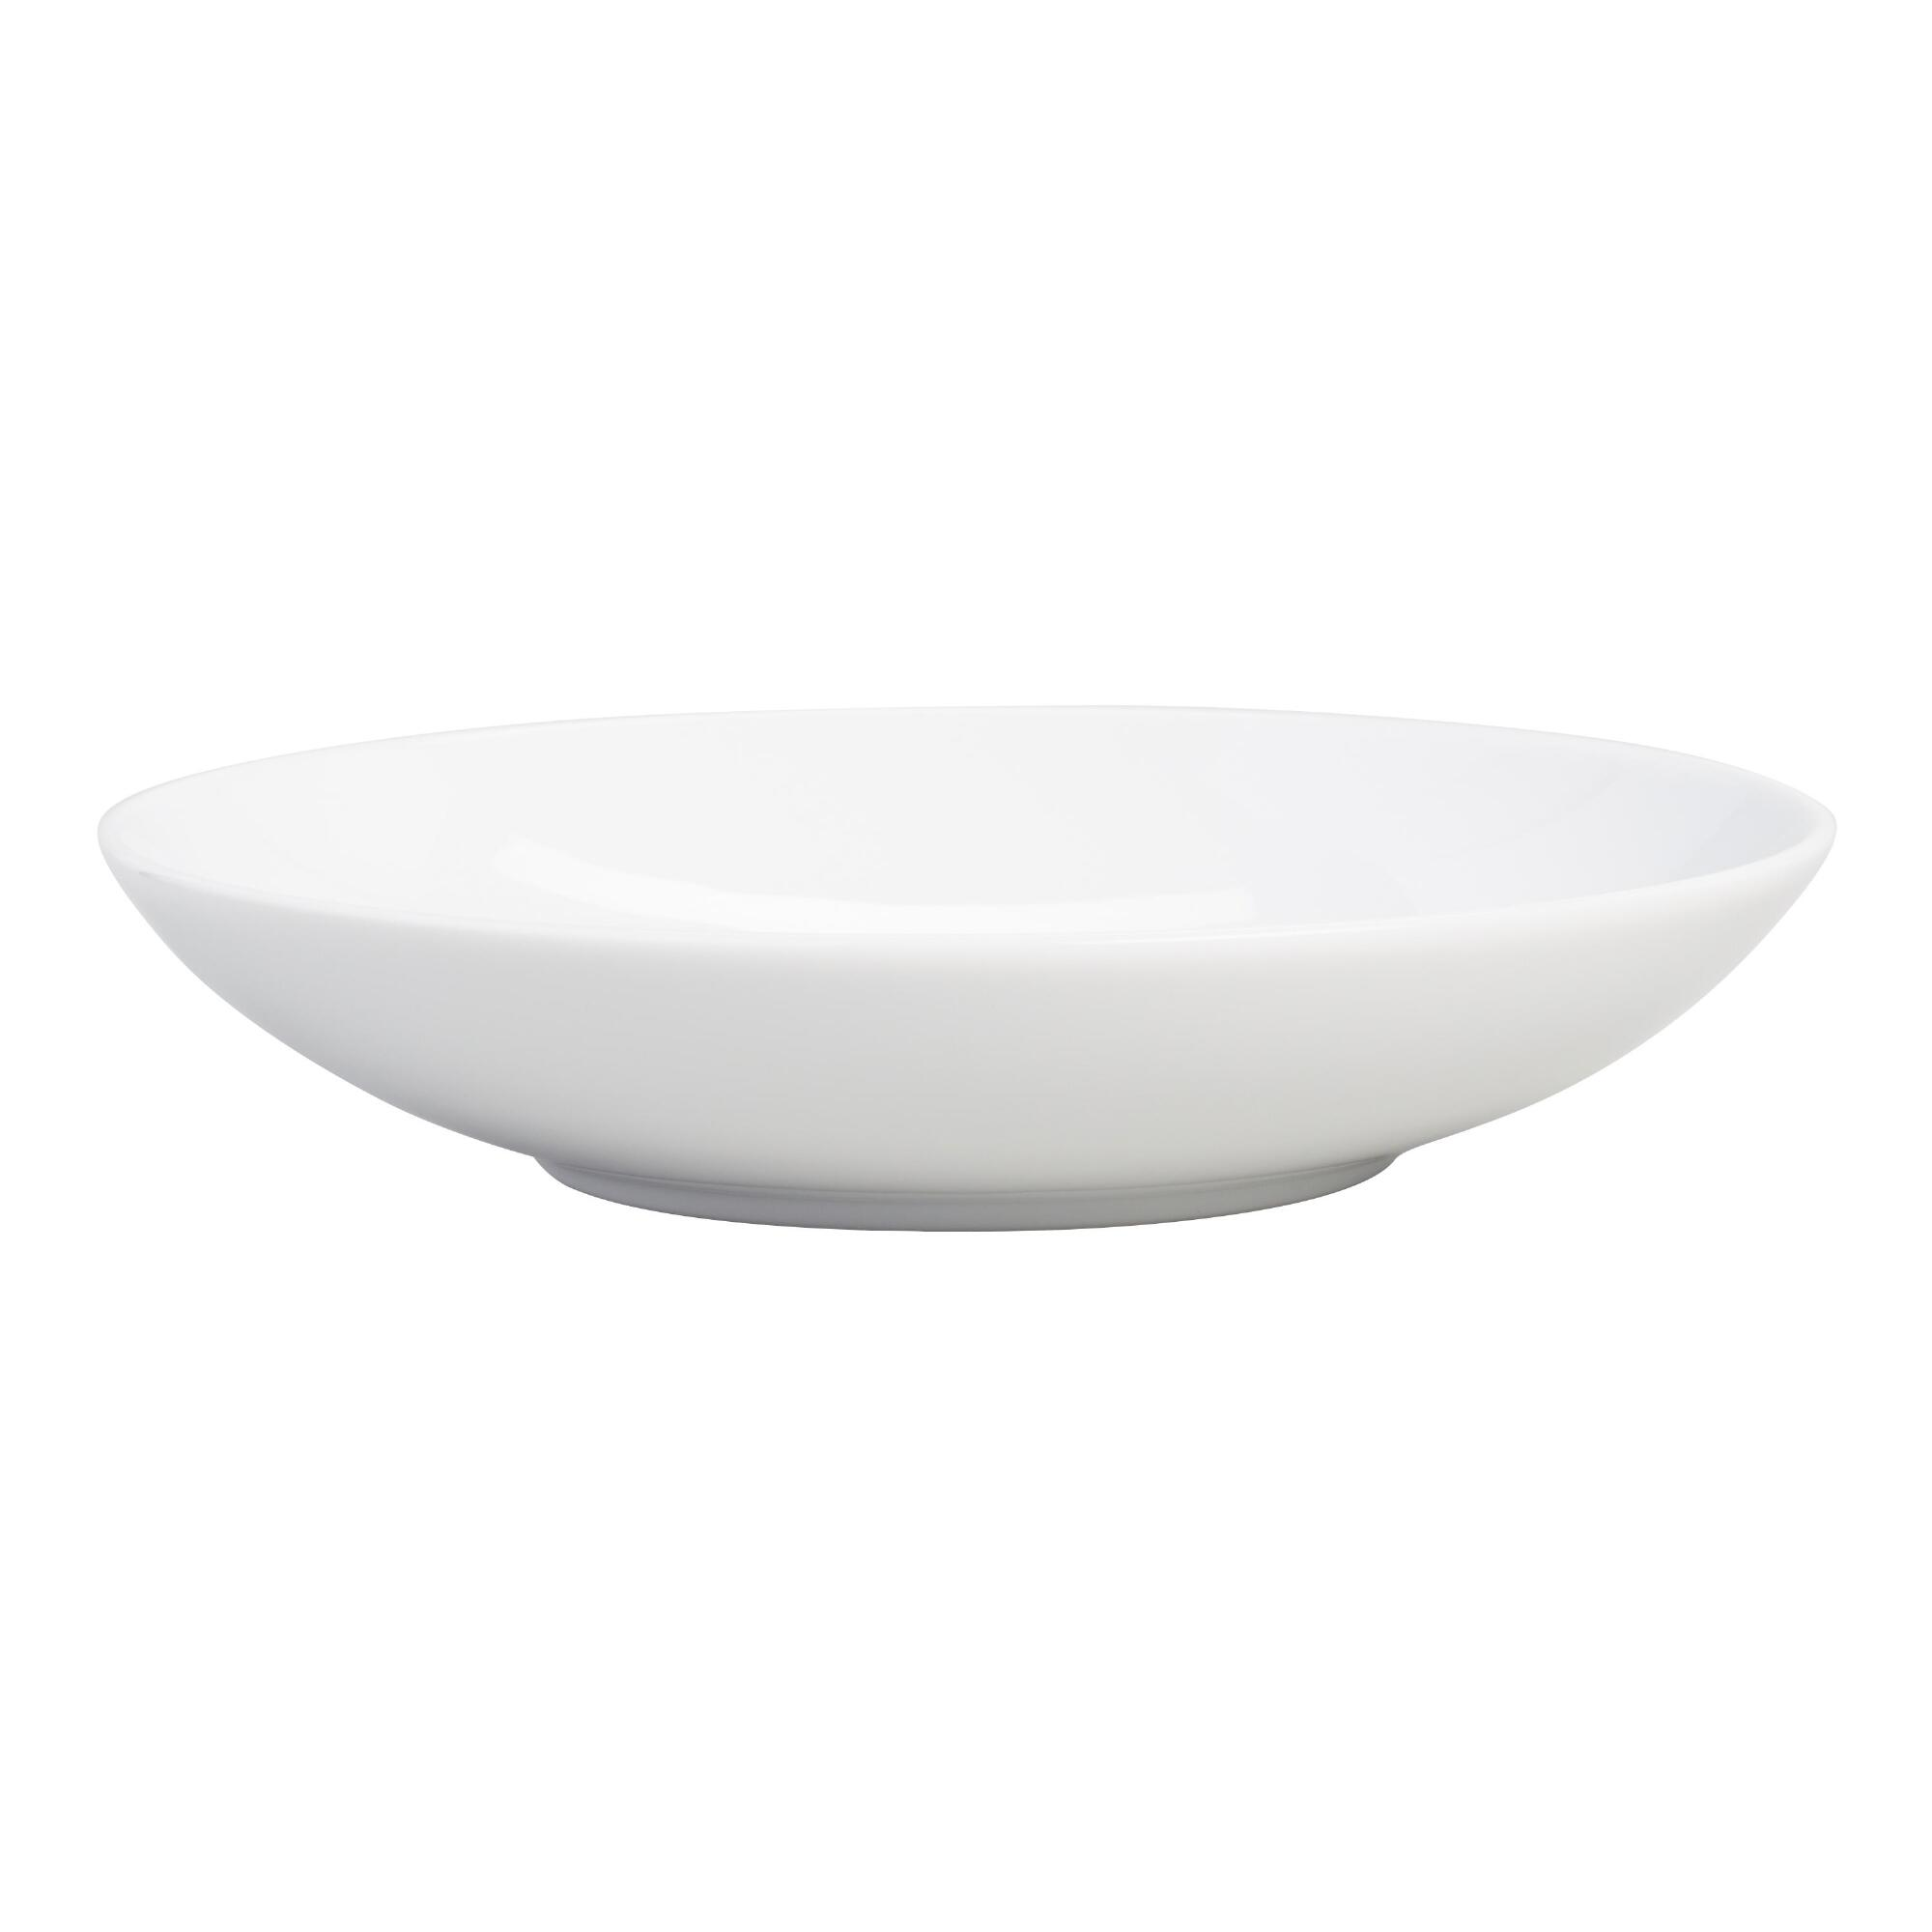 White Coupe Soup Bowls, set of 4 | World Market